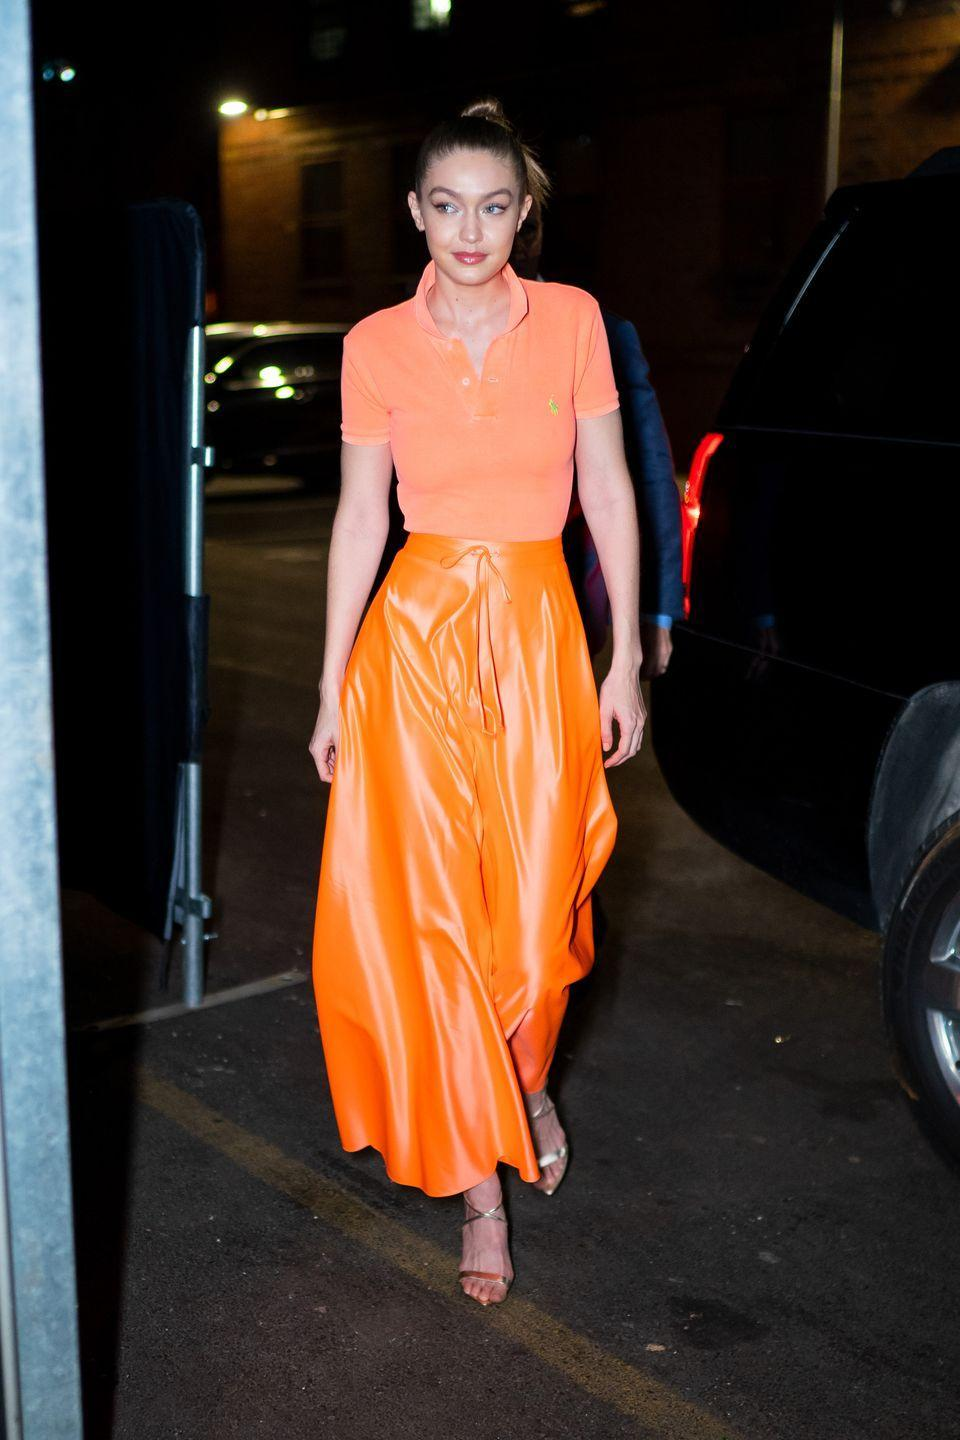 """<p>Dust off your middle school polo collection, because Gigi Hadid just brought them back to life. She wore a tangerine <a href=""""https://go.redirectingat.com?id=74968X1596630&url=https%3A%2F%2Fwww.ralphlauren.com%2Fwomen-clothing-polo-shirts%3Fwebcat%3Dwomen%257Cclothing%257CPolo%2BShirts&sref=https%3A%2F%2Fwww.seventeen.com%2Ffashion%2Fceleb-fashion%2Fg3011%2Fgigi-hadid-street-style%2F"""" rel=""""nofollow noopener"""" target=""""_blank"""" data-ylk=""""slk:Ralph Lauren"""" class=""""link rapid-noclick-resp"""">Ralph Lauren</a> version – with the collar popped, no less – and a matching midi skirt to a party with <a href=""""https://www.maybelline.com/"""" rel=""""nofollow noopener"""" target=""""_blank"""" data-ylk=""""slk:Maybelline"""" class=""""link rapid-noclick-resp"""">Maybelline</a>. </p>"""